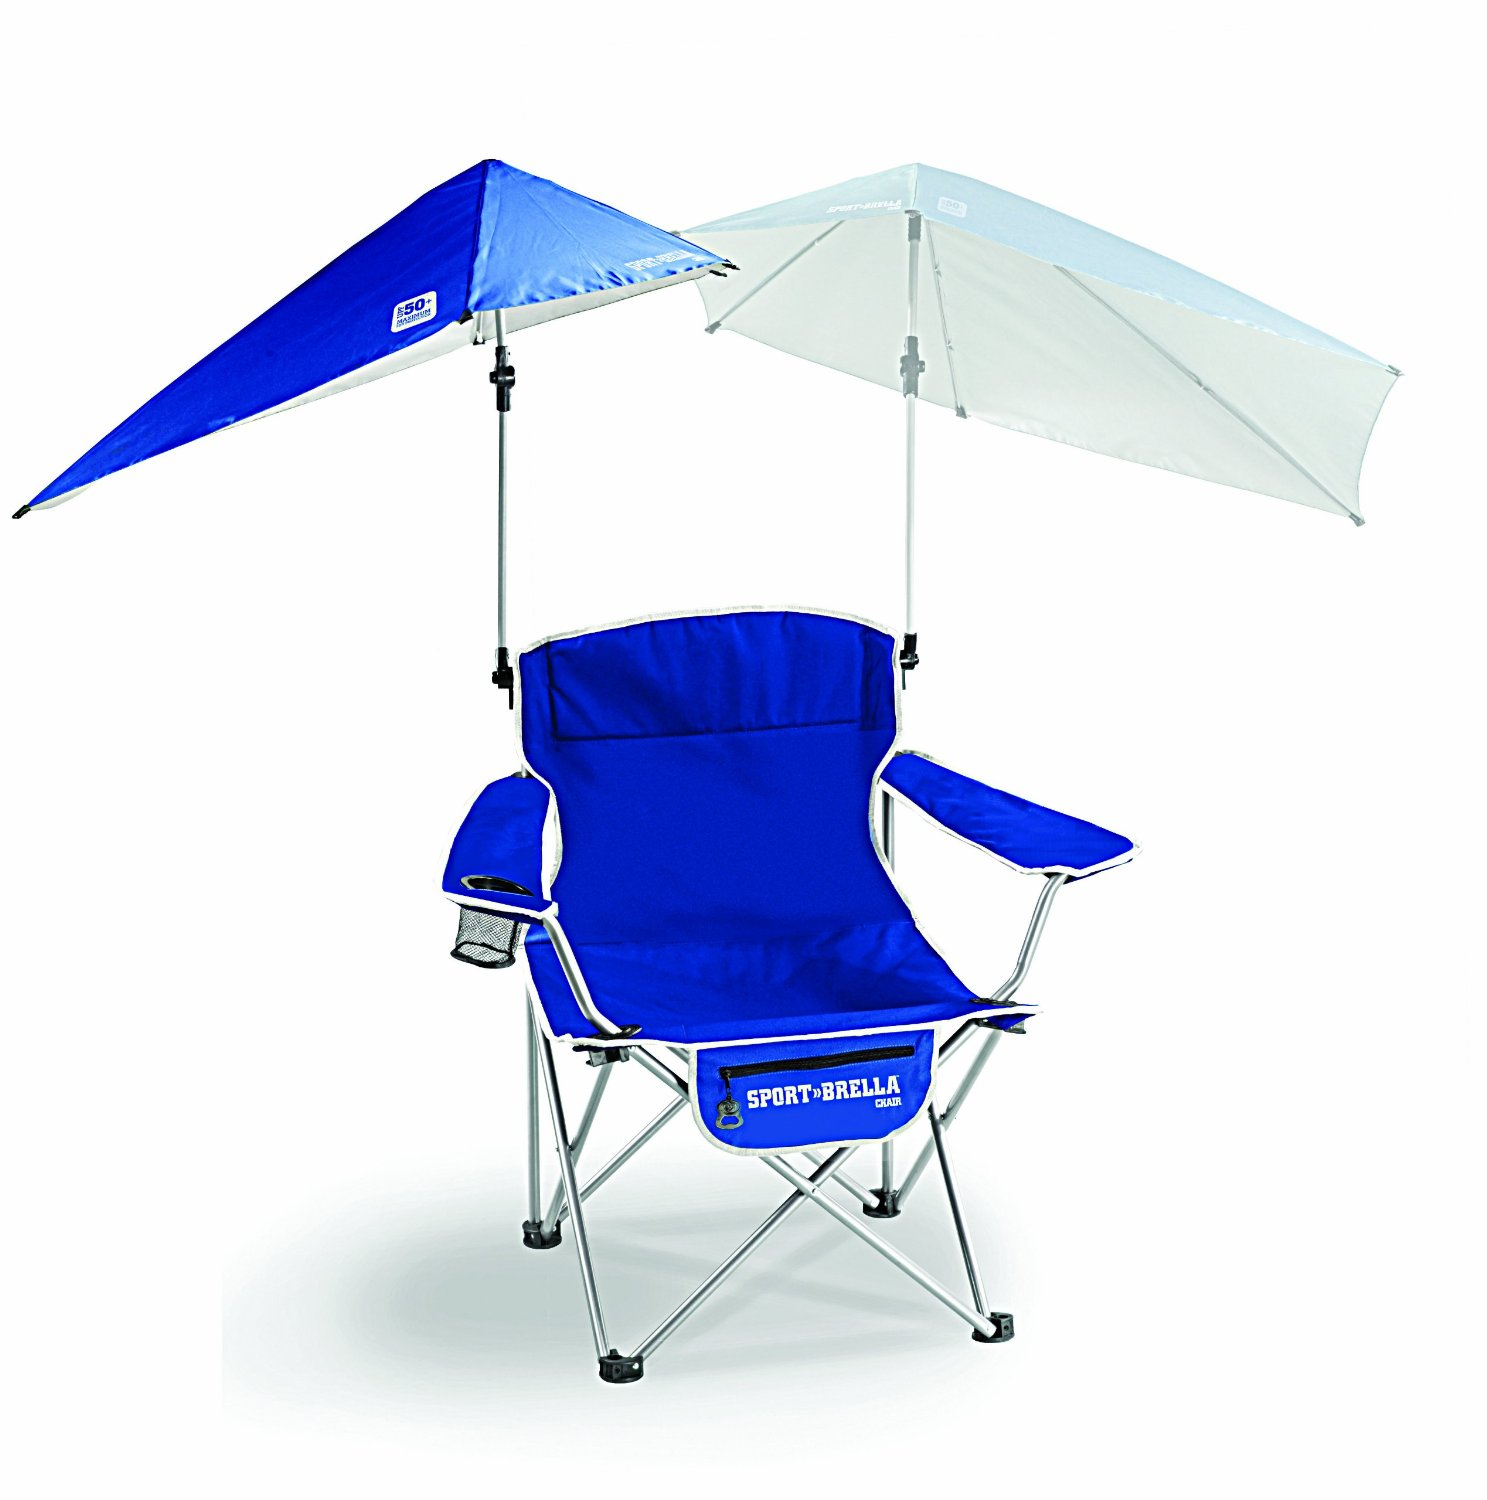 5 Best Shade Chair – Provide protection from the sun for a great